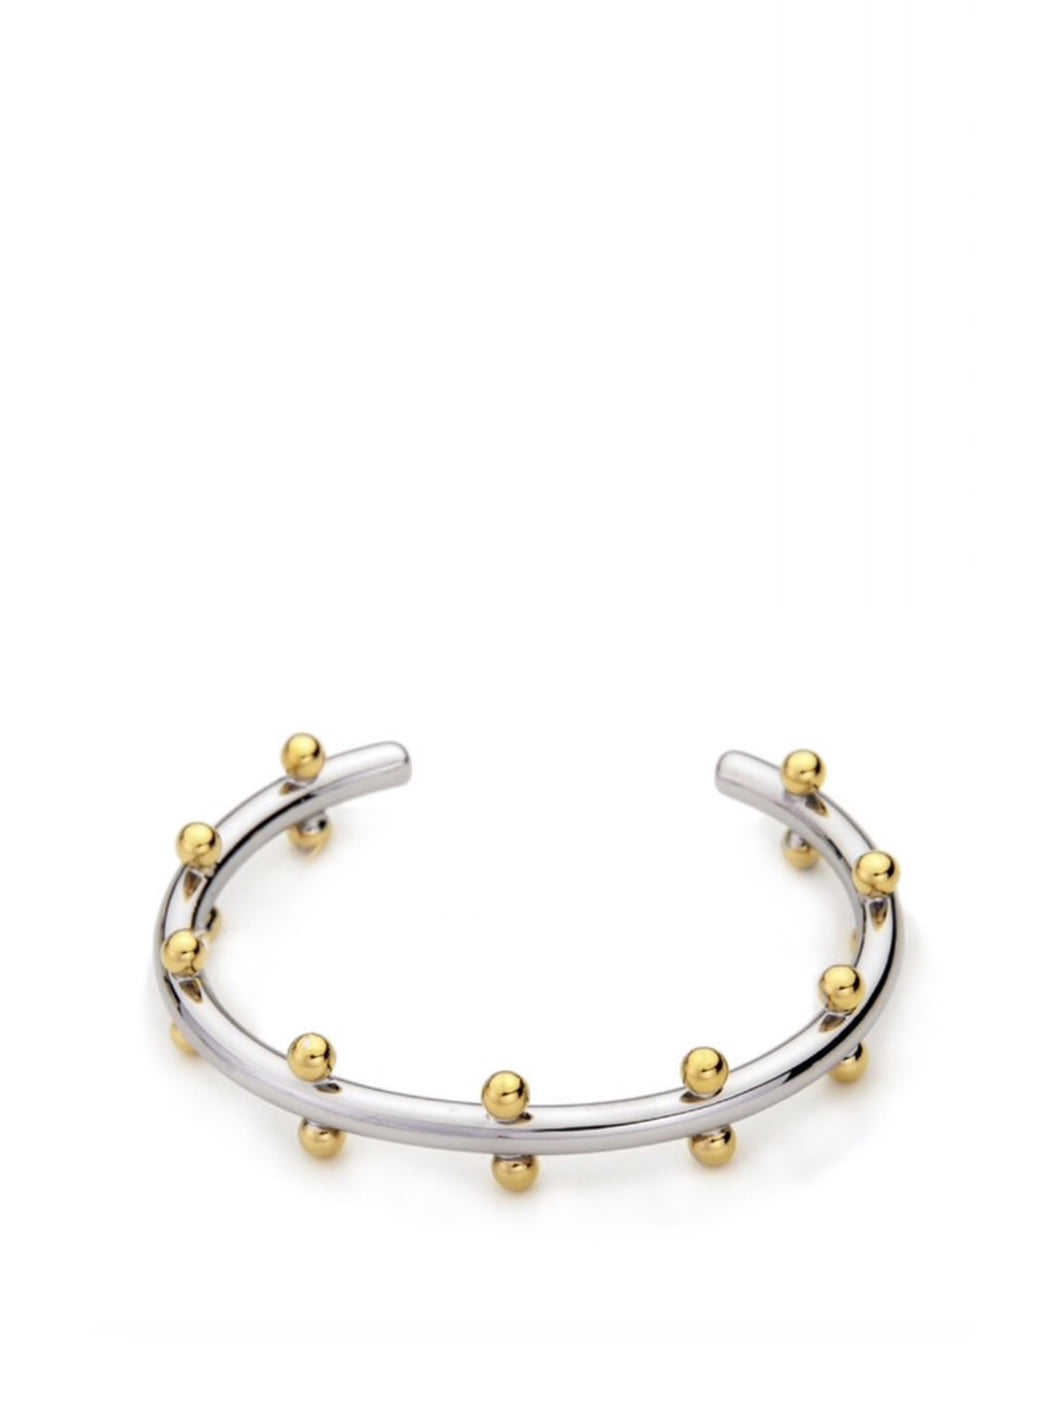 Chic Beaded Bangle Mixed Metal